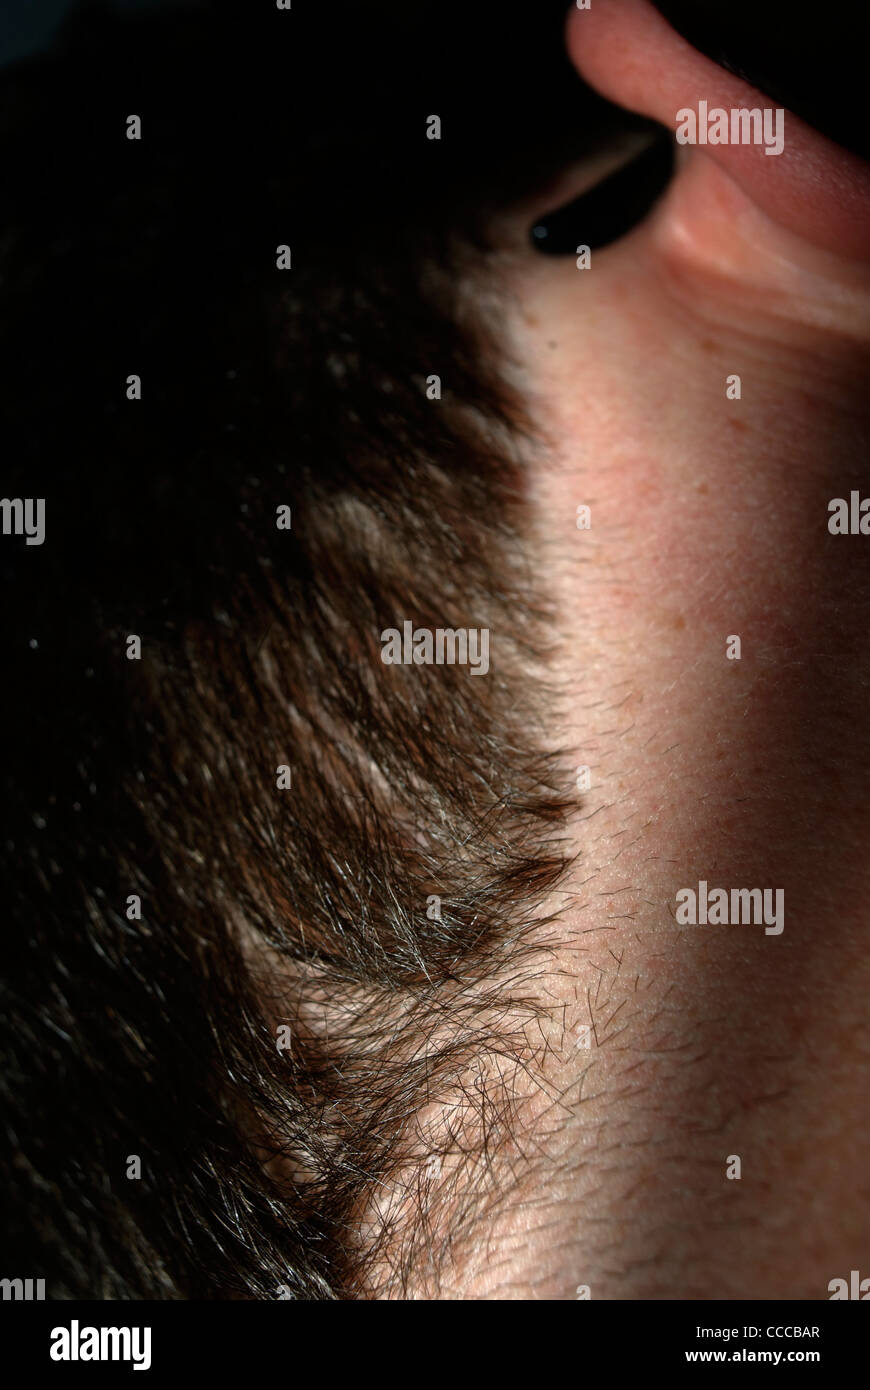 The neck of a Man - Stock Image